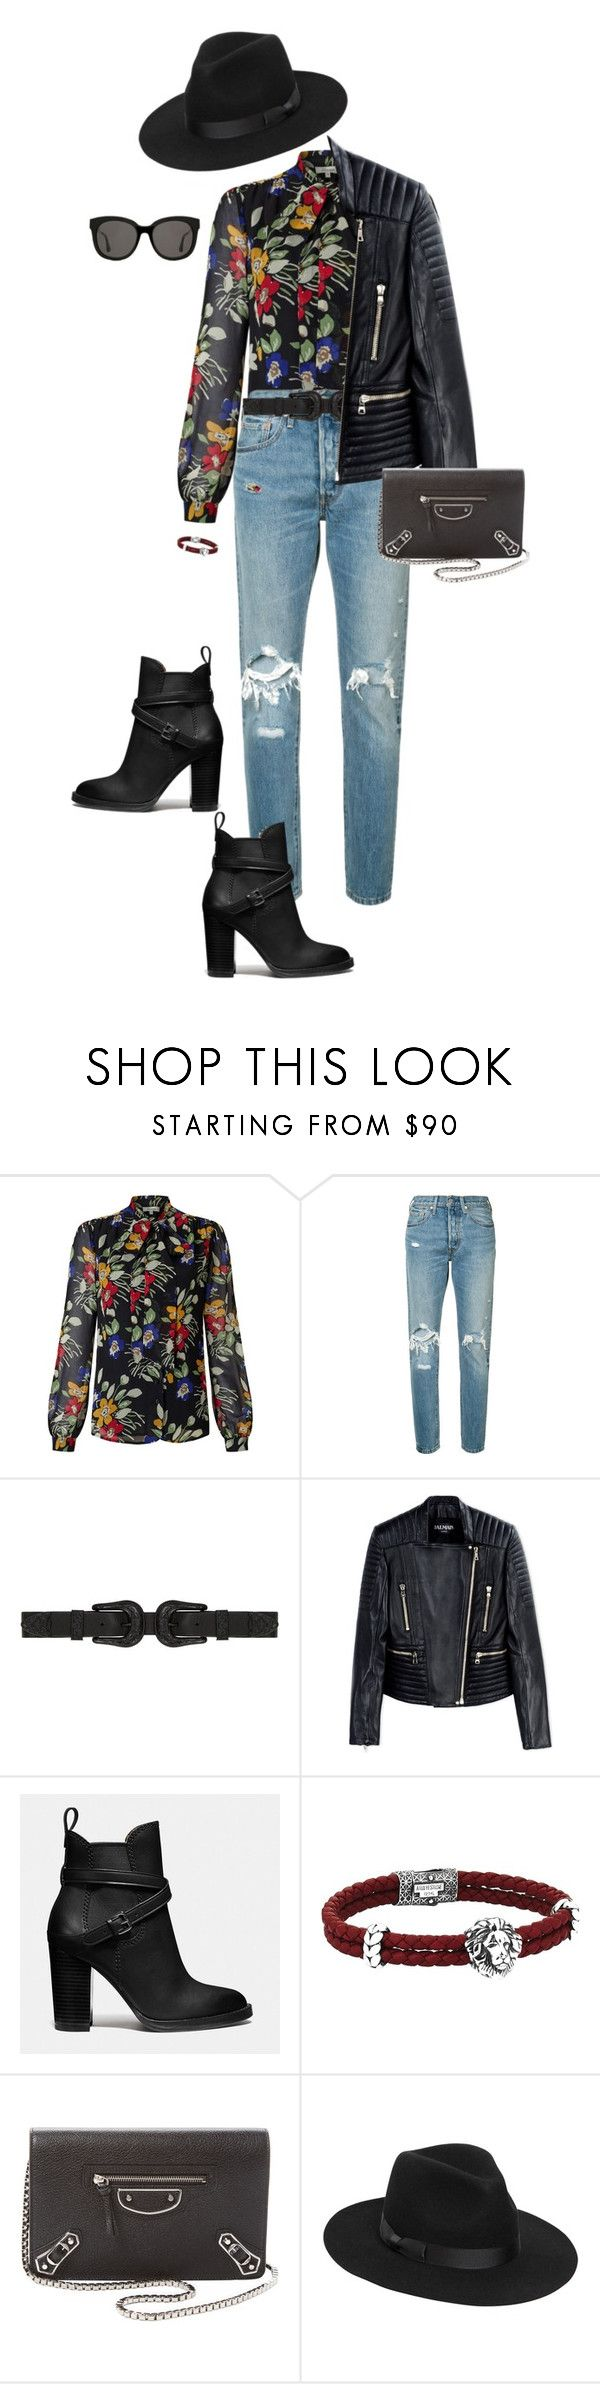 """Sparks"" by ccoss ❤ liked on Polyvore featuring Somerset by Alice Temperley, Levi's, B-Low the Belt, Balmain, Coach, Balenciaga, Lack of Color and Gentle Monster"